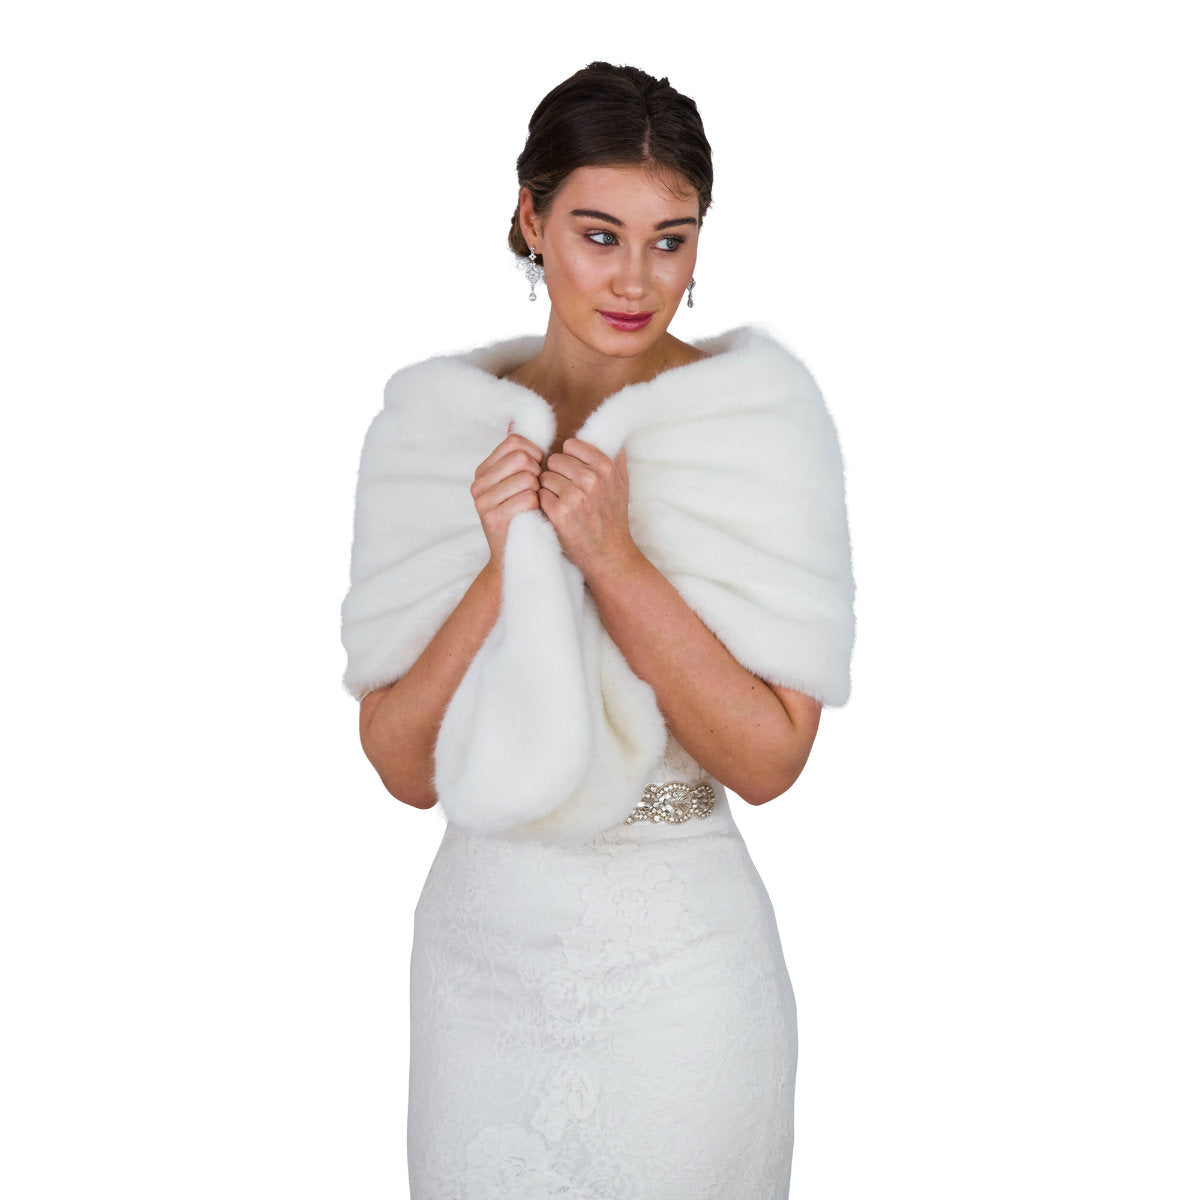 Faux Fur Shawl Wedding Wrap Shrug Ivory